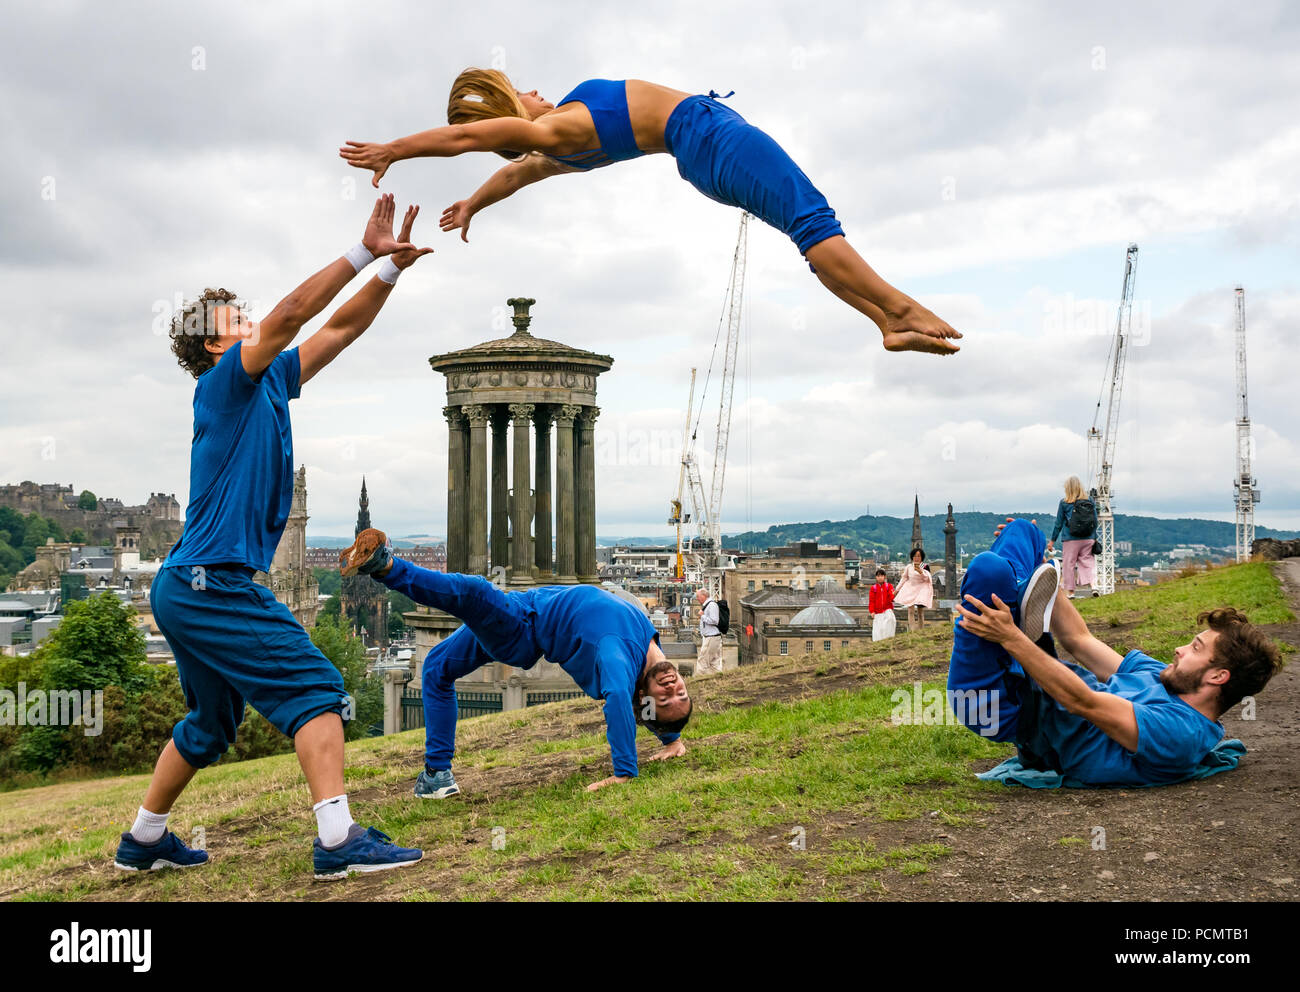 edinburgh-fringe-festival-edinburgh-uk-3